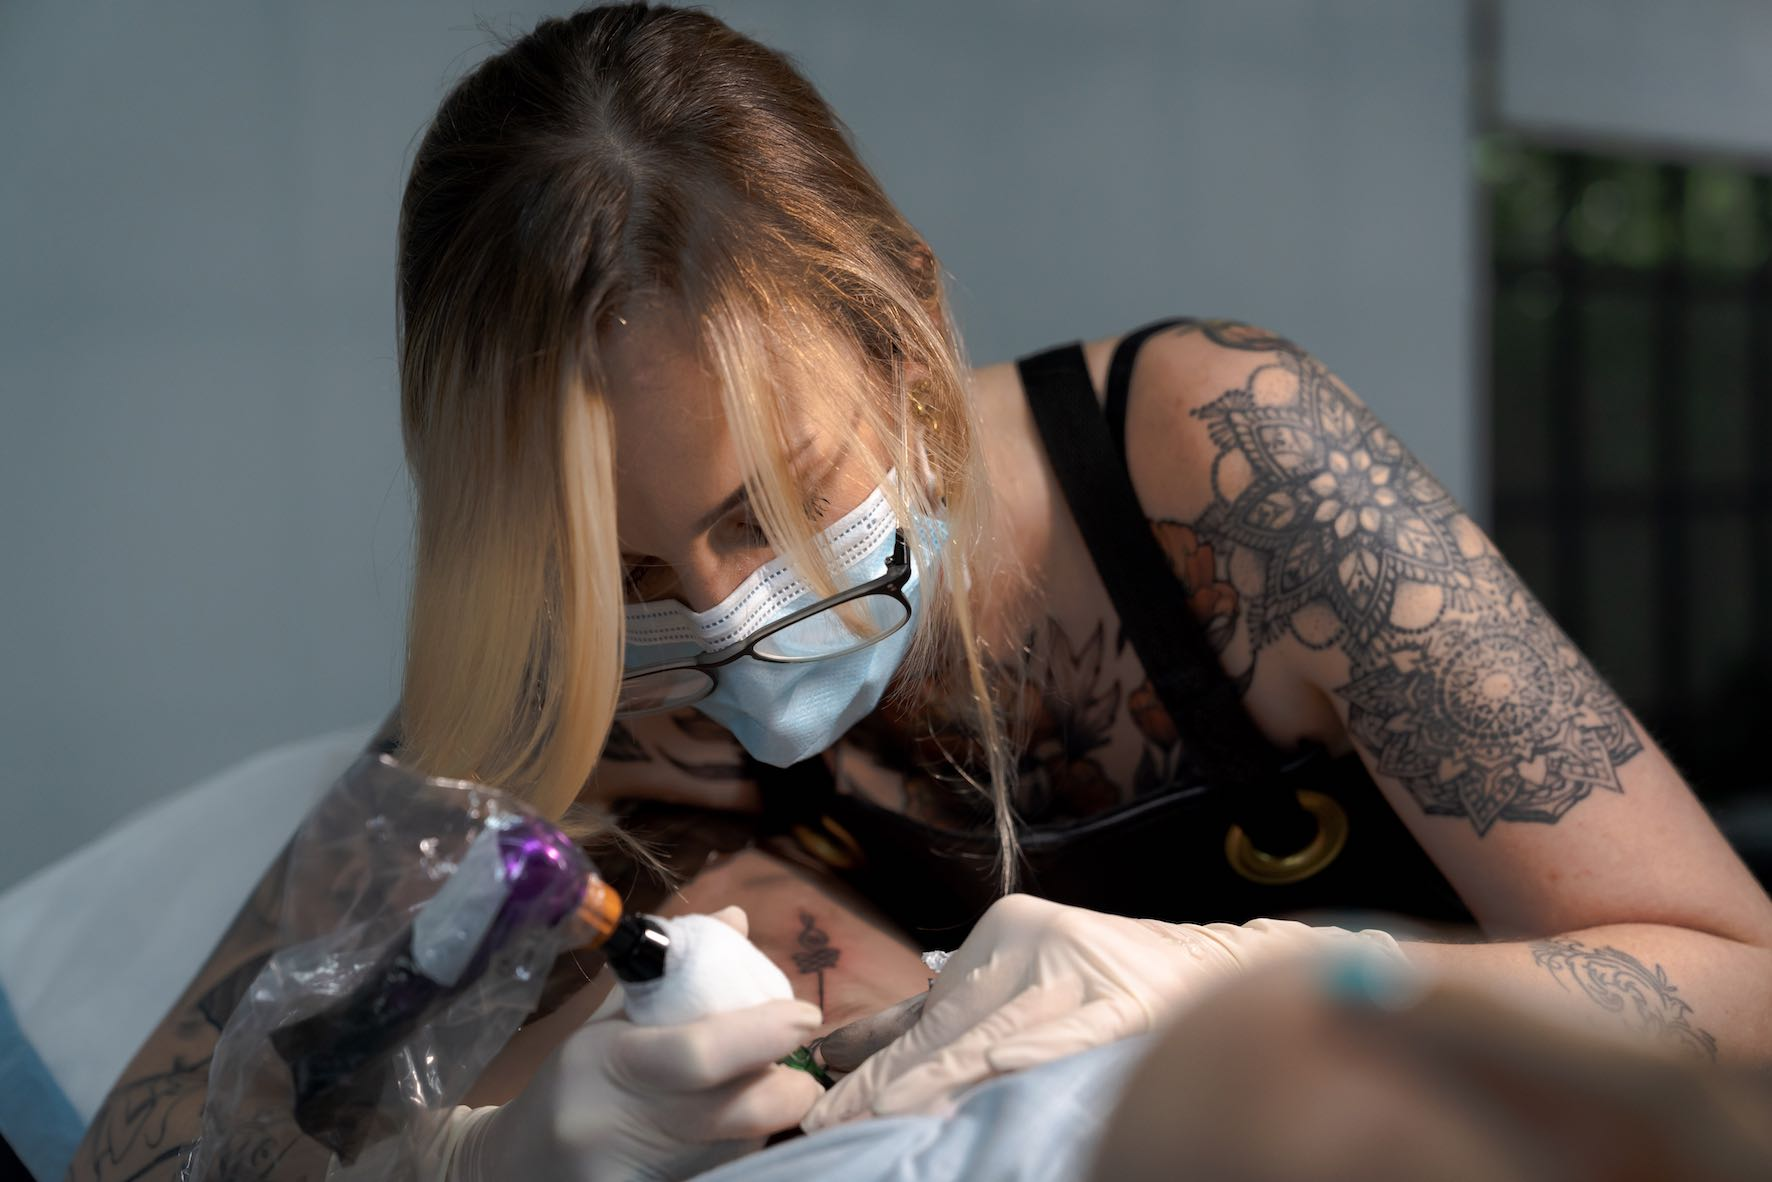 Jade Alexandra completing a tattoo on her client